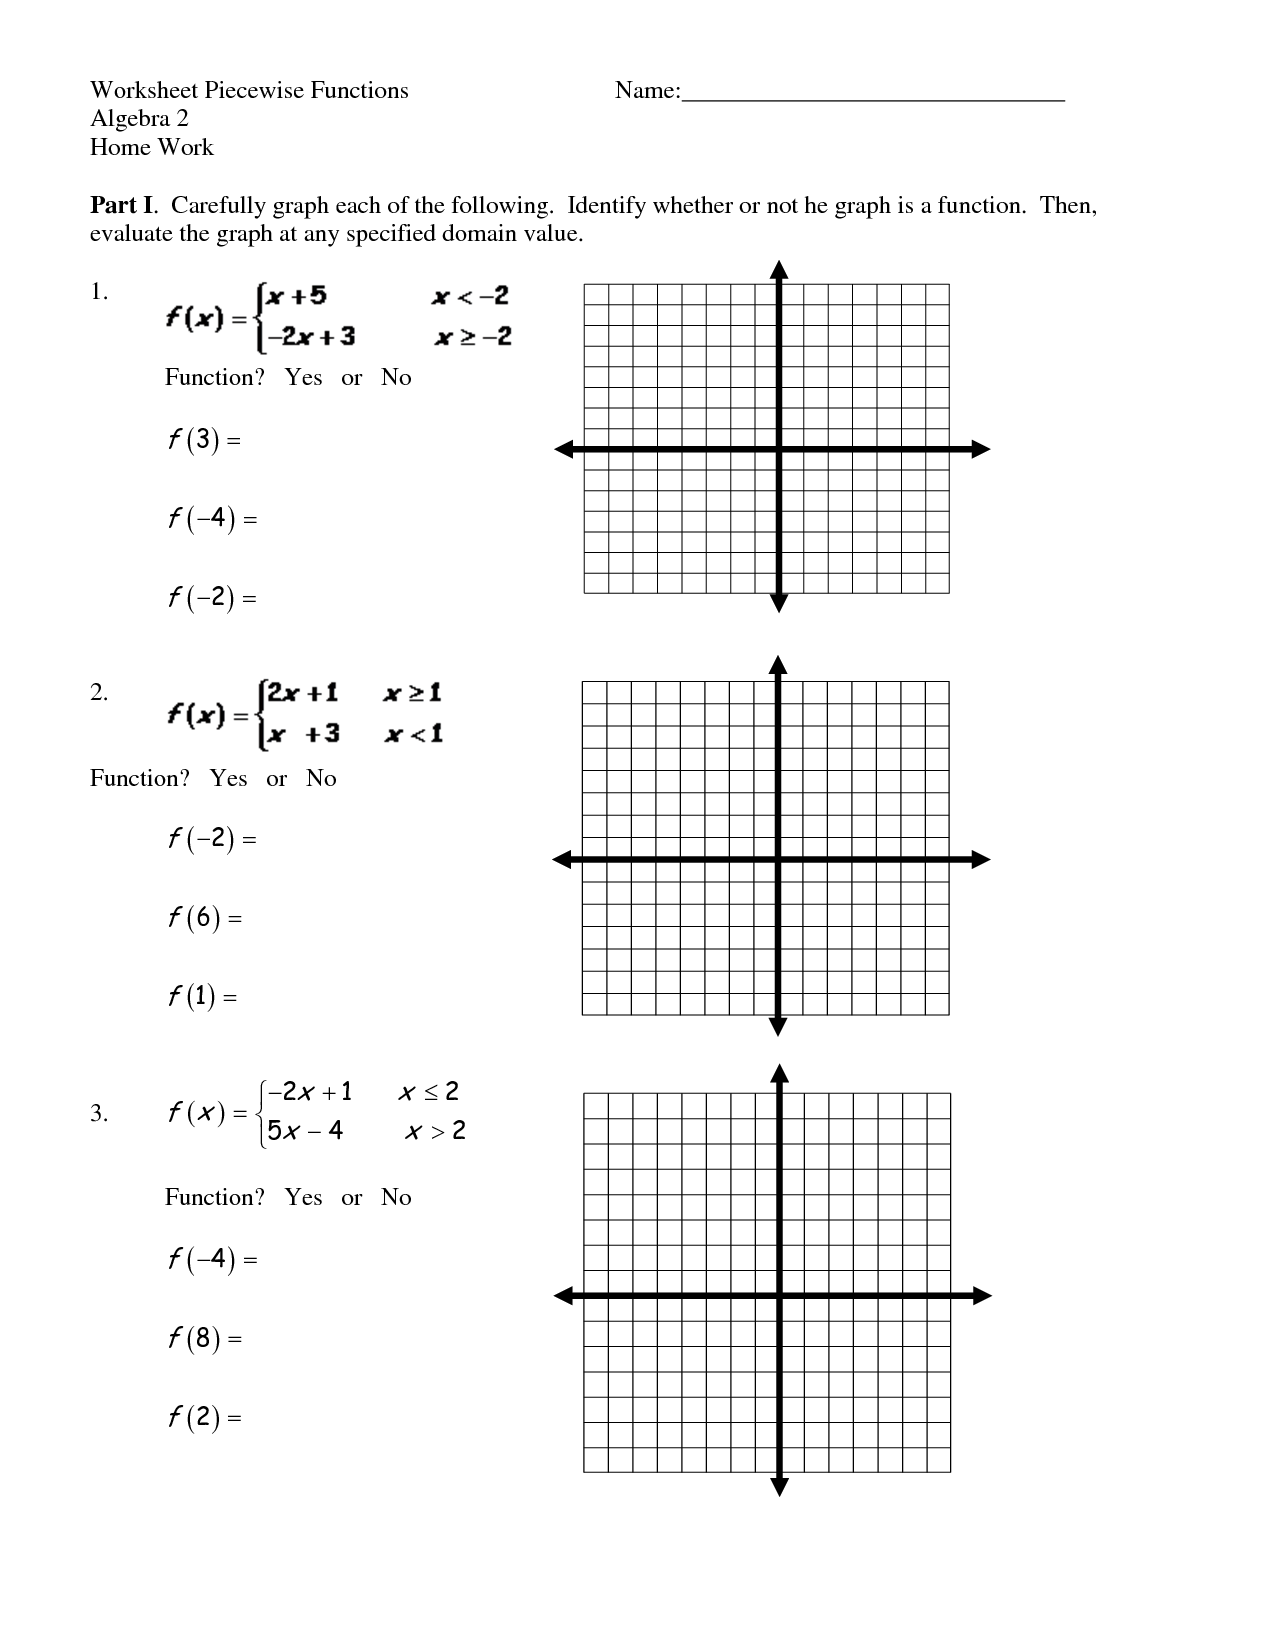 Graphing Calculator Online Piecewise Functions. graphing a